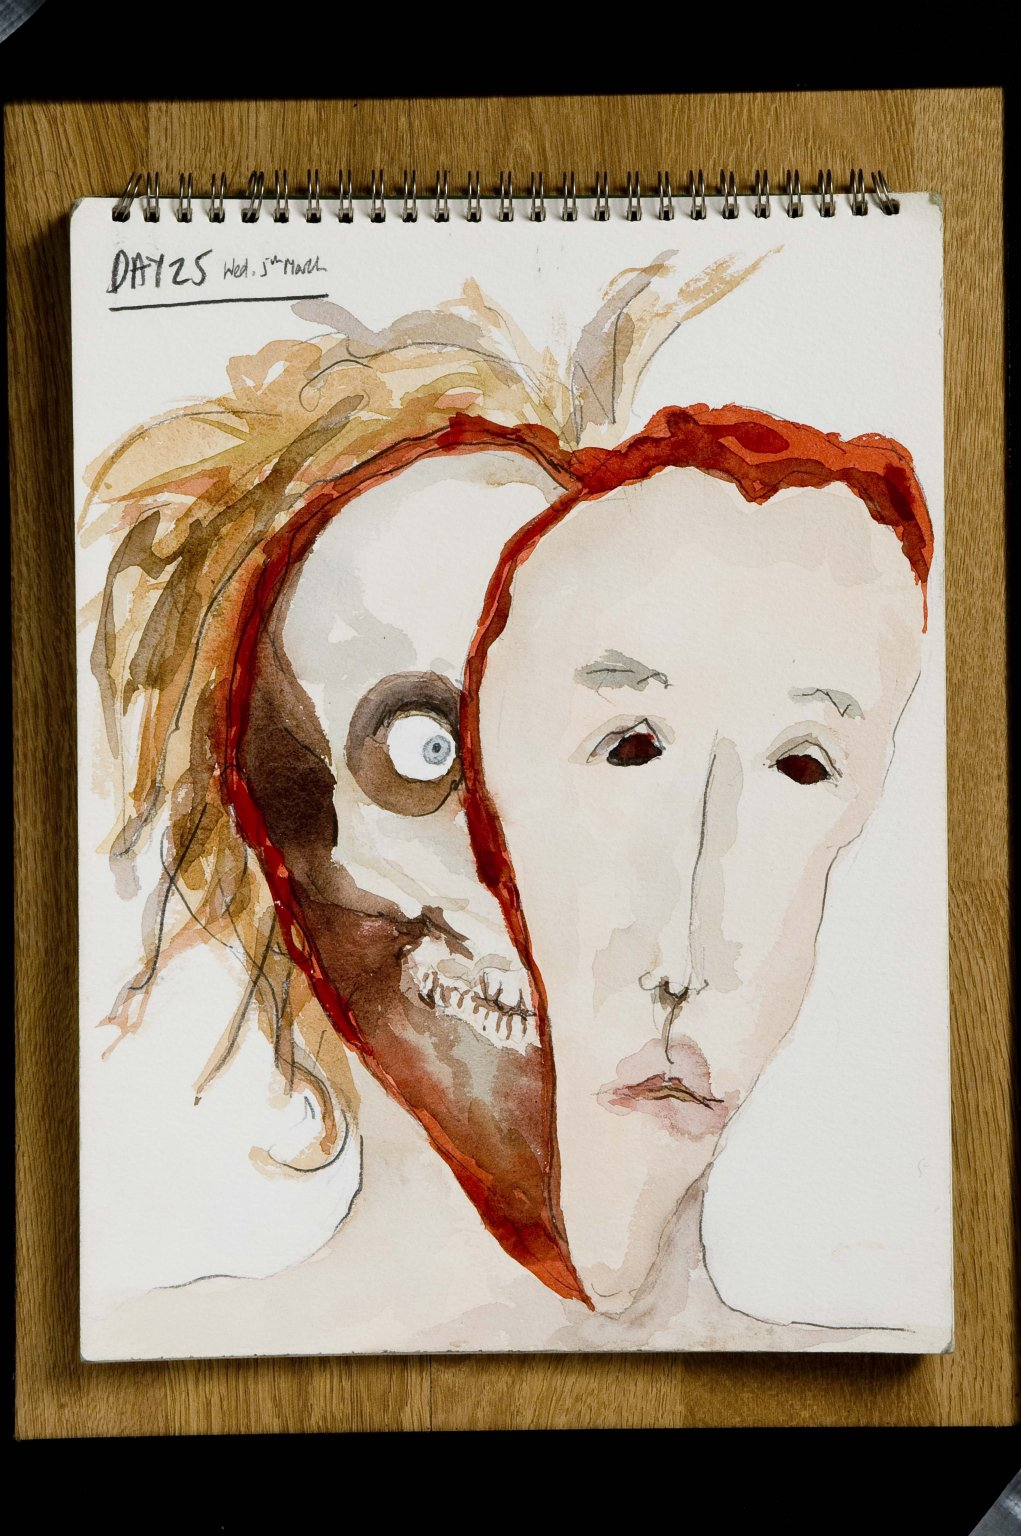 Drawings: Mental Illness and Me. Day 25 (1997) - Bobby Baker